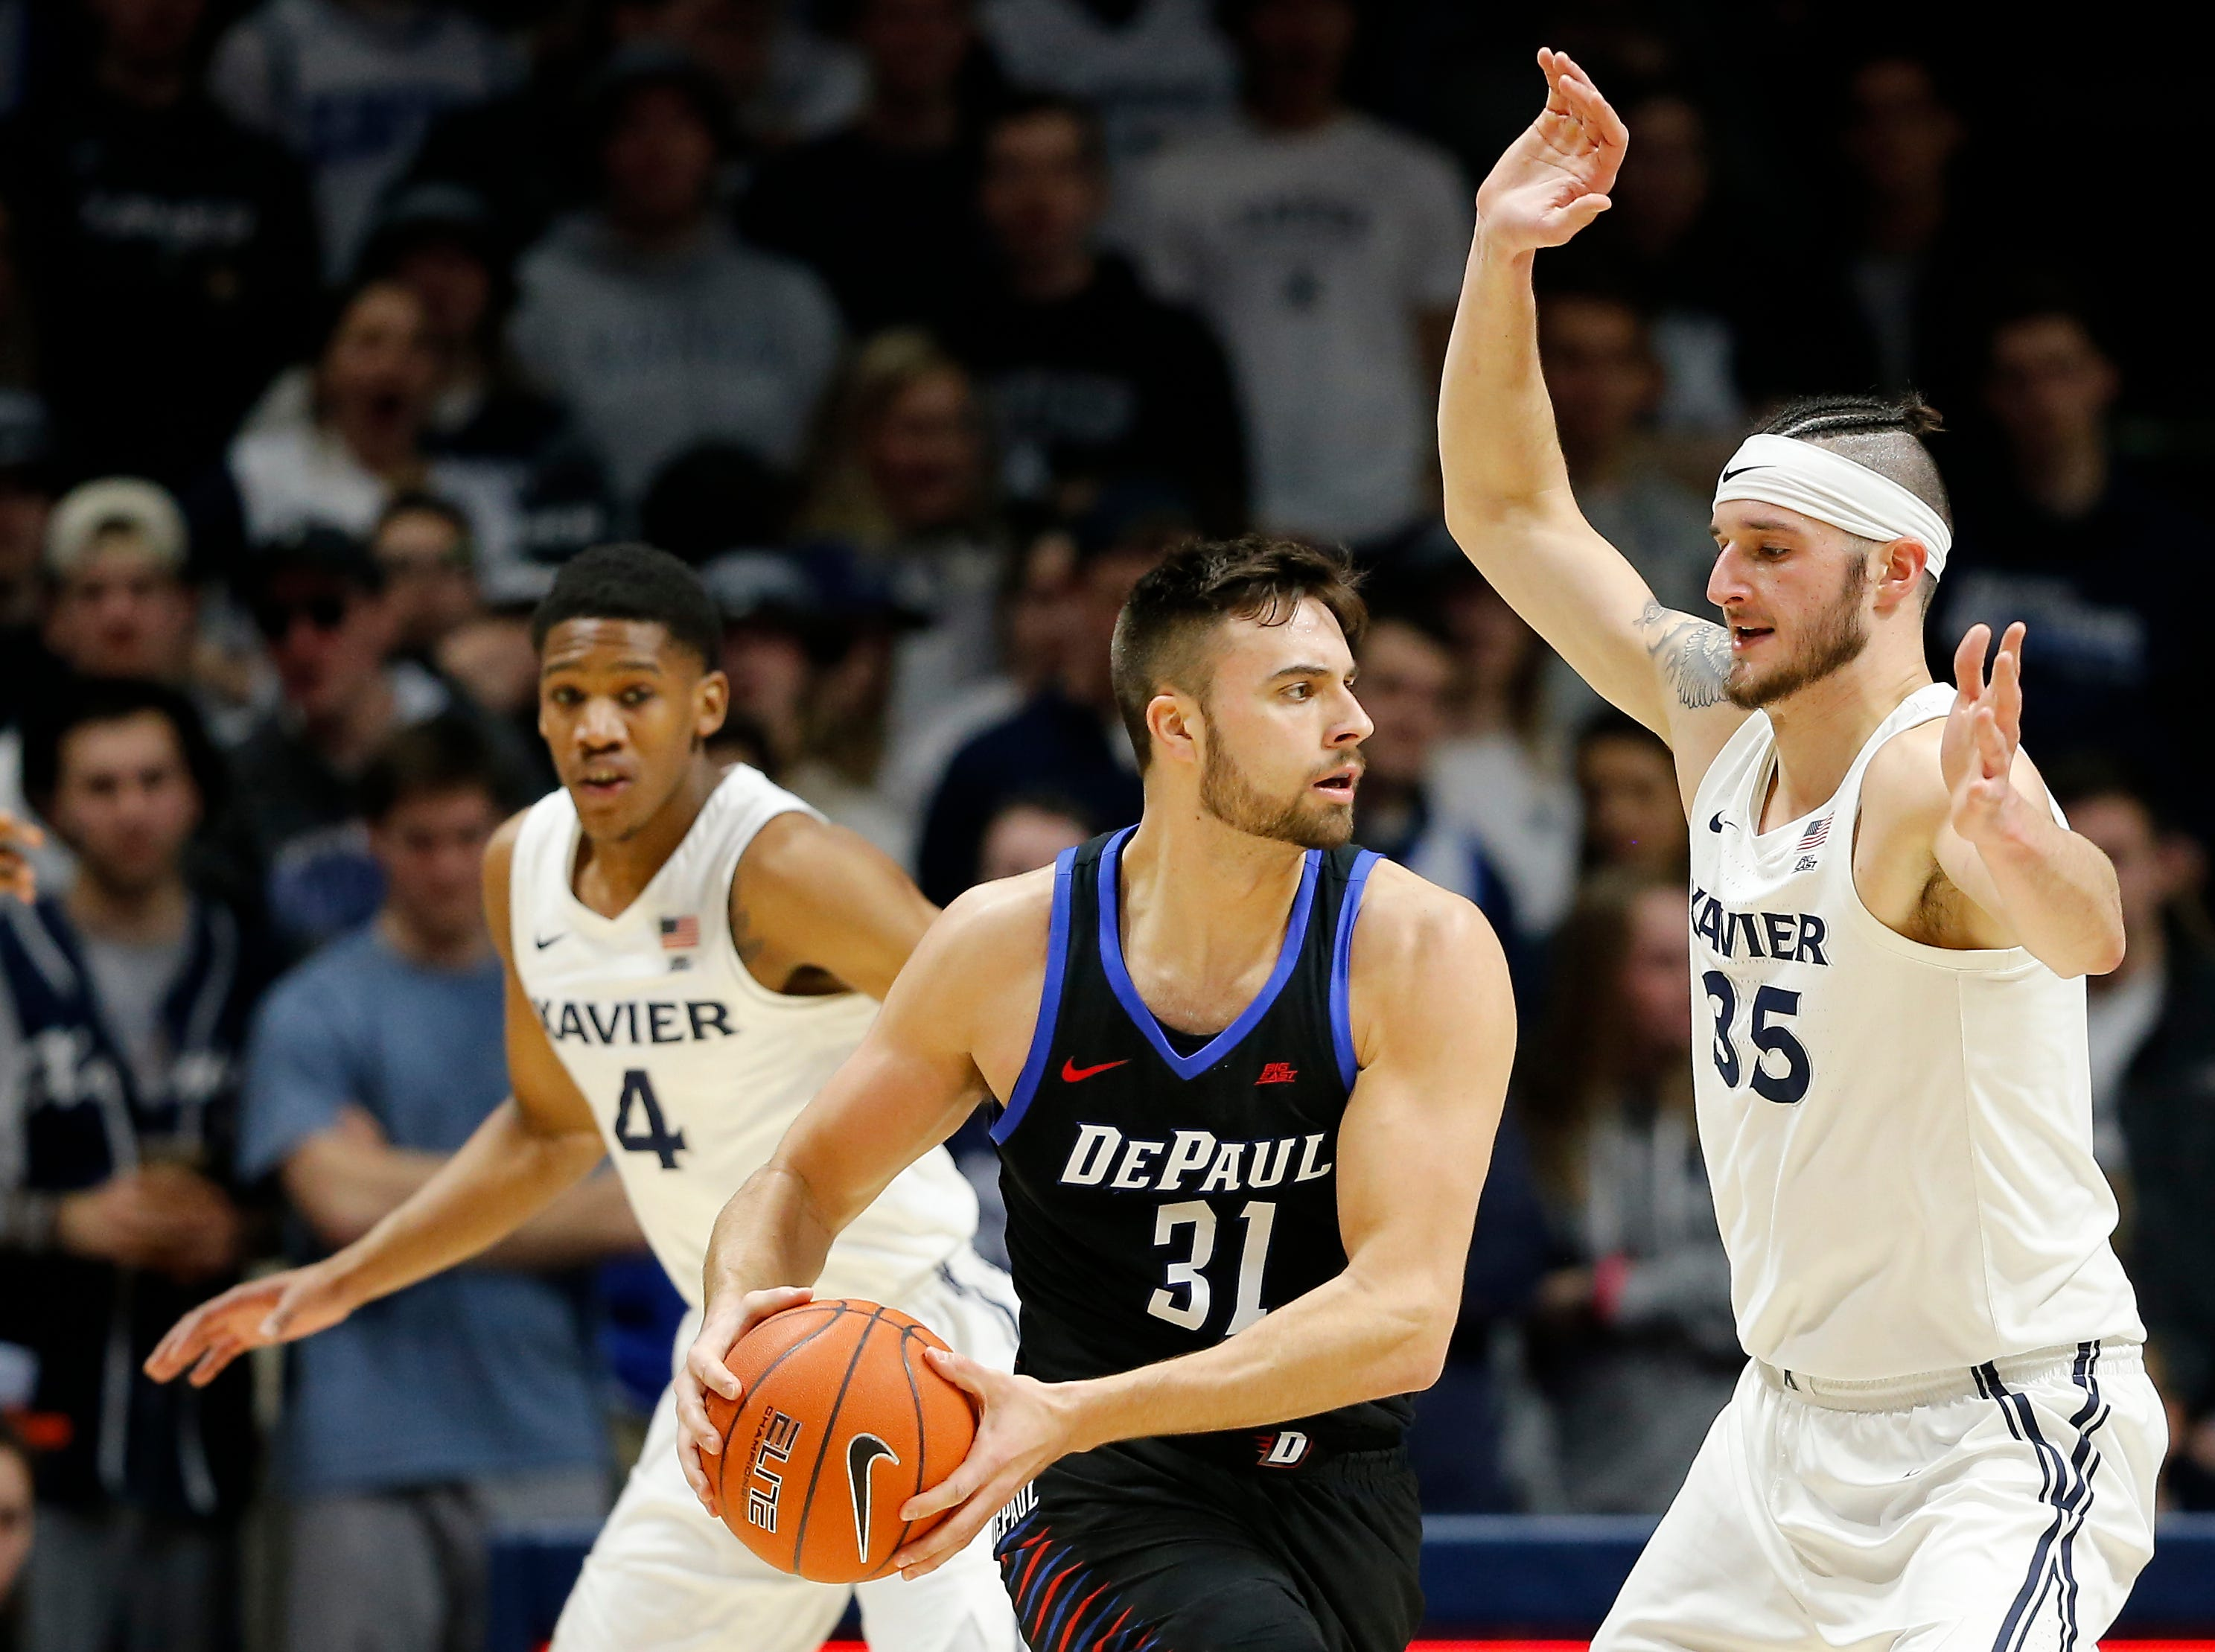 DePaul Blue Demons guard Max Strus (31) passes around Xavier Musketeers forward Zach Hankins (35) in the second half of the NCAA Big East Conference game between the Xavier Musketeers and the DePaul Blue Demons at the Cintas Center in Cincinnati on Saturday, Feb. 9, 2019. Xavier lost its sixth game in a row, 74-62.